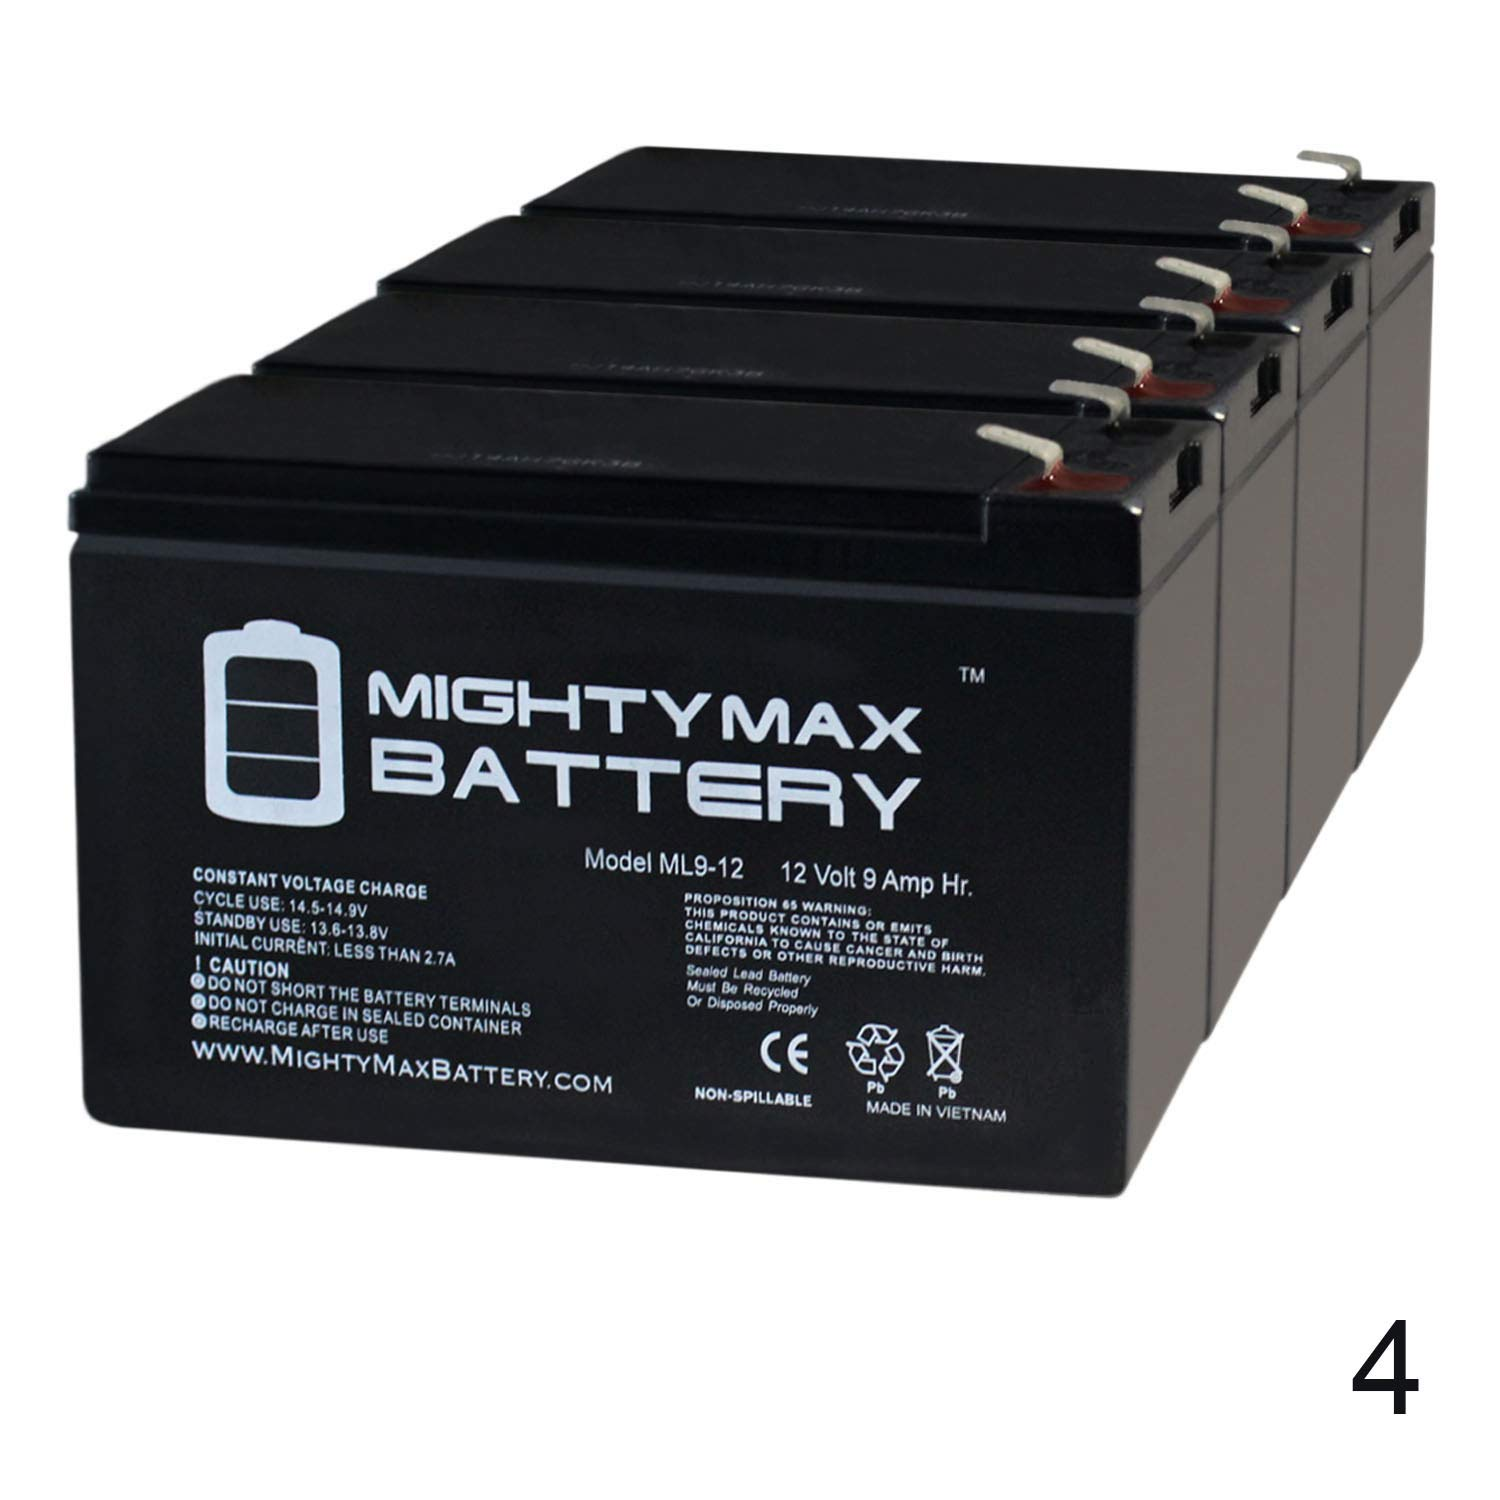 Mighty Max Battery ML9-12 - 12 Volt 9 AH SLA Battery - Pack of 4 Brand Product